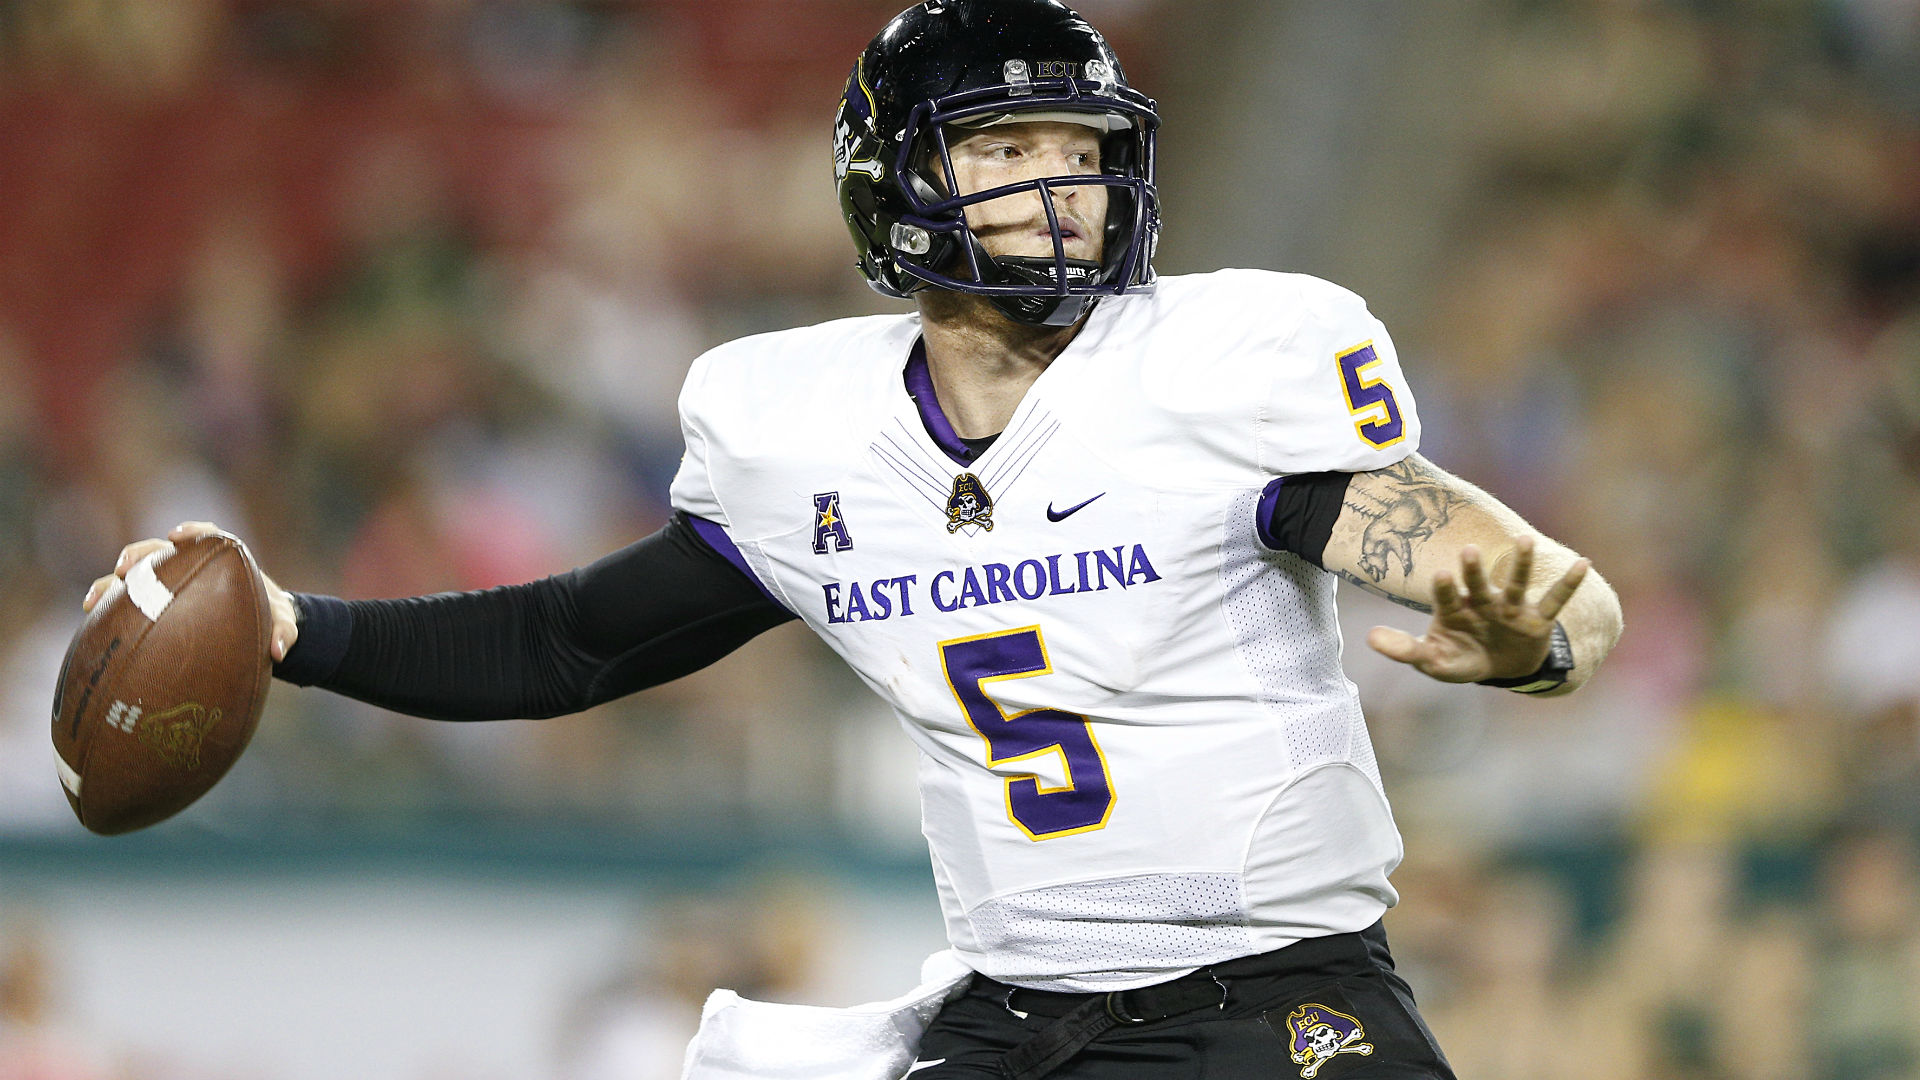 East Carolina vs. Florida betting lines and pick – Pirates bring one of nation's top offenses to Birmingham Bowl